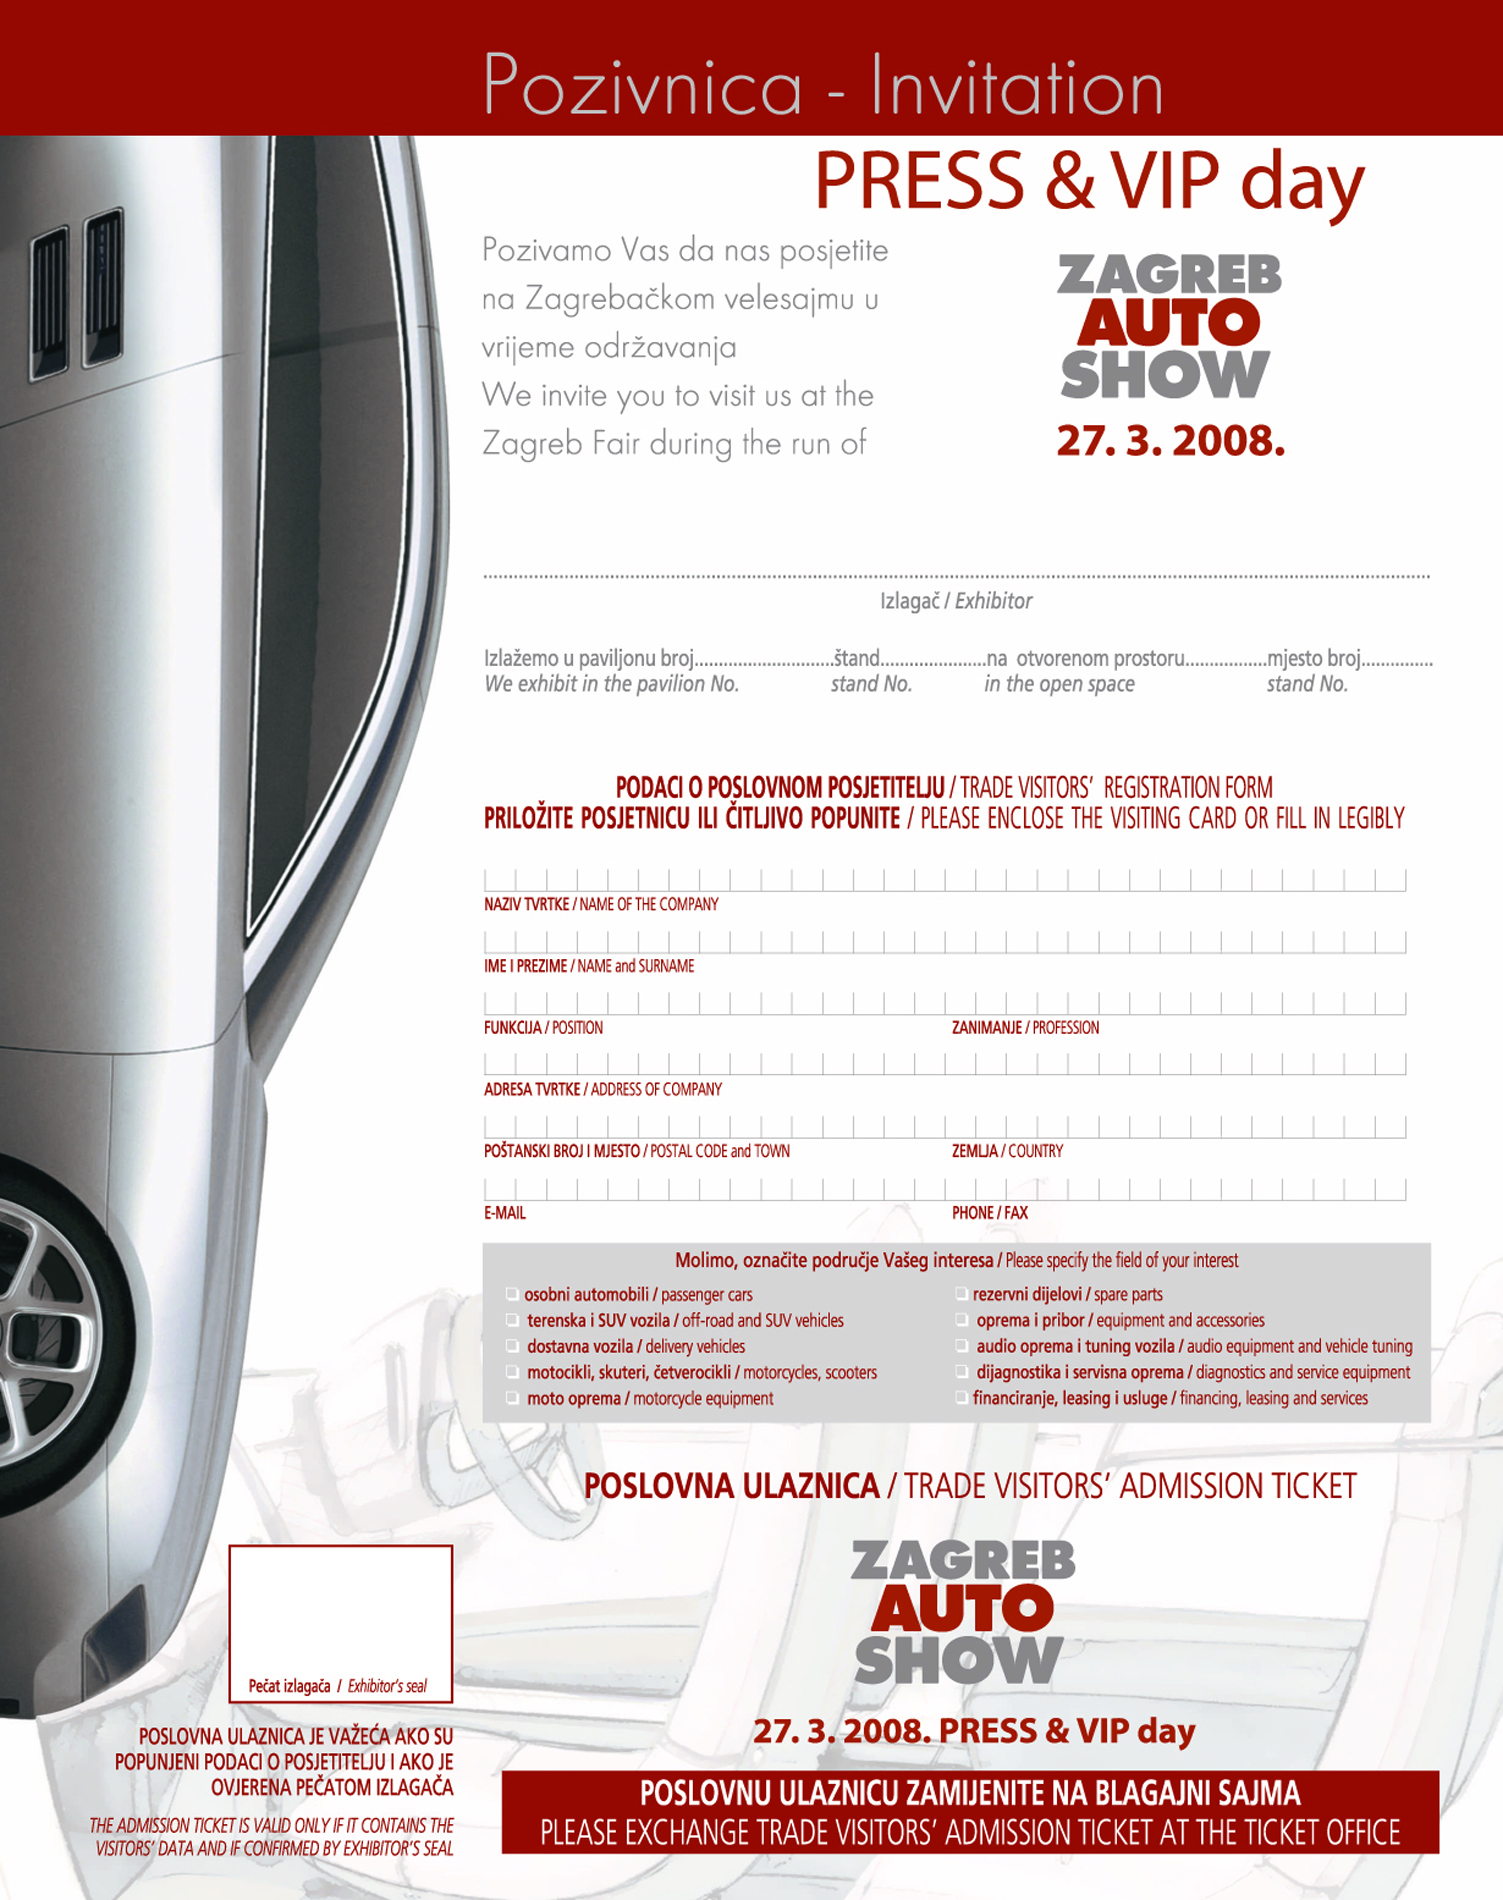 Zagreb Auto Show, VIP entrance tickets